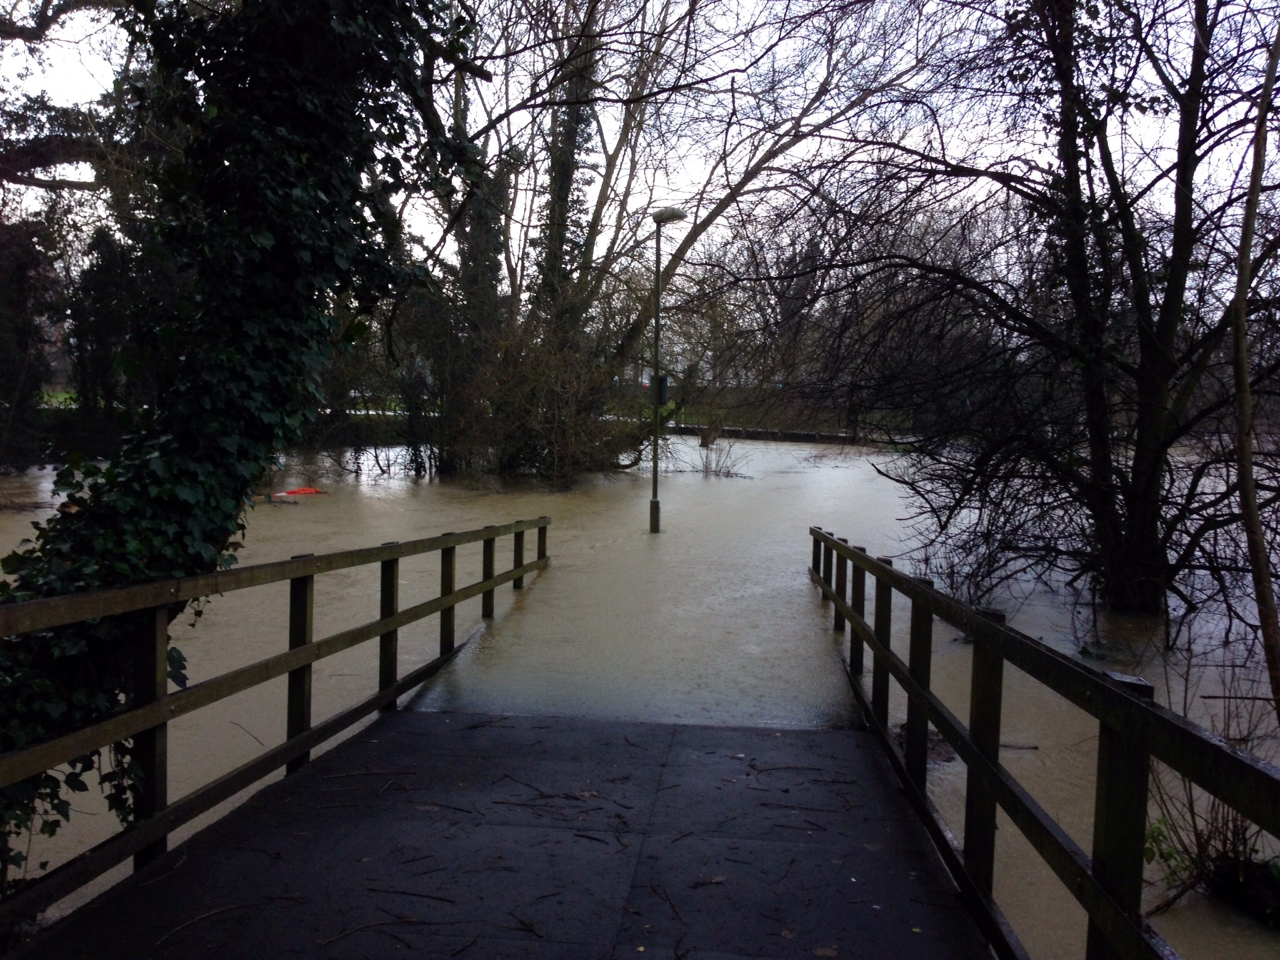 Flooded Ock walk